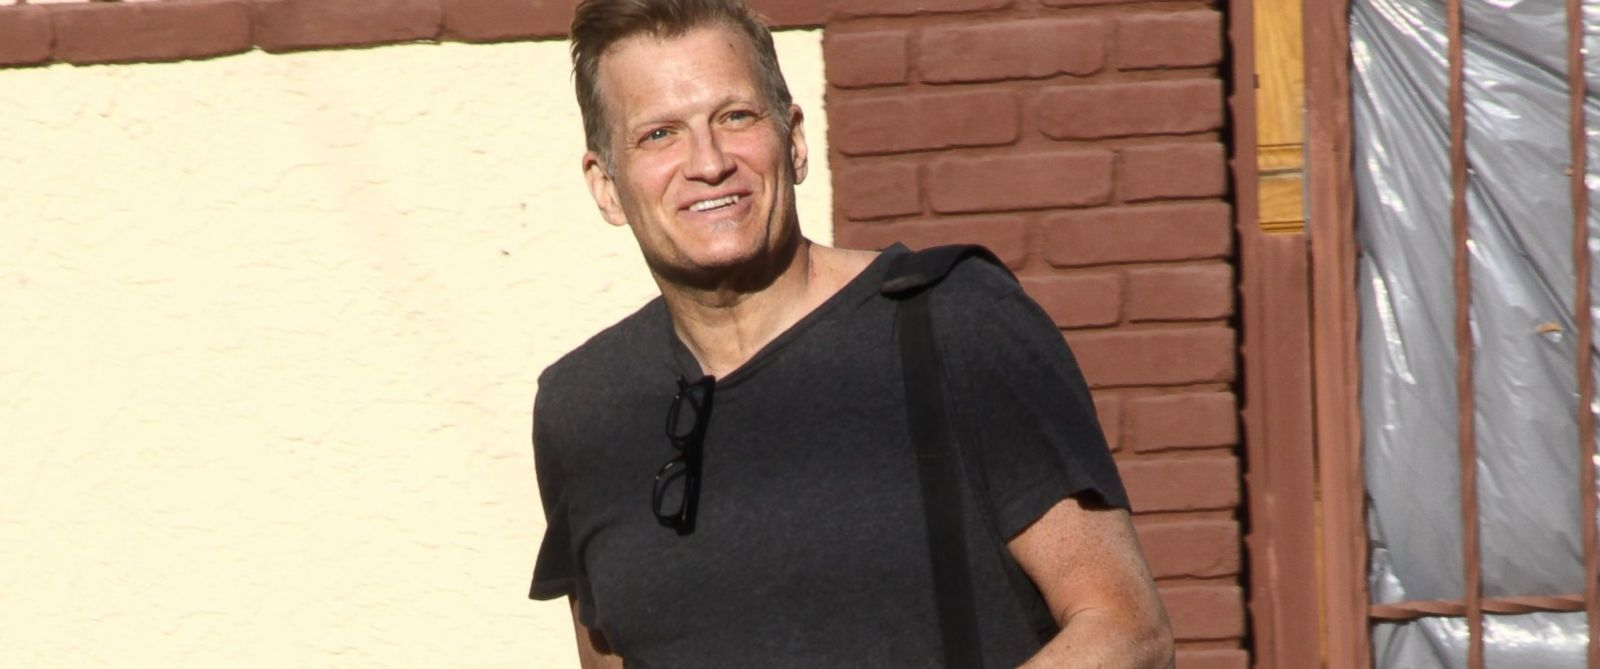 PHOTO: Drew Carey is seen on May 13, 2014 in Los Angeles.